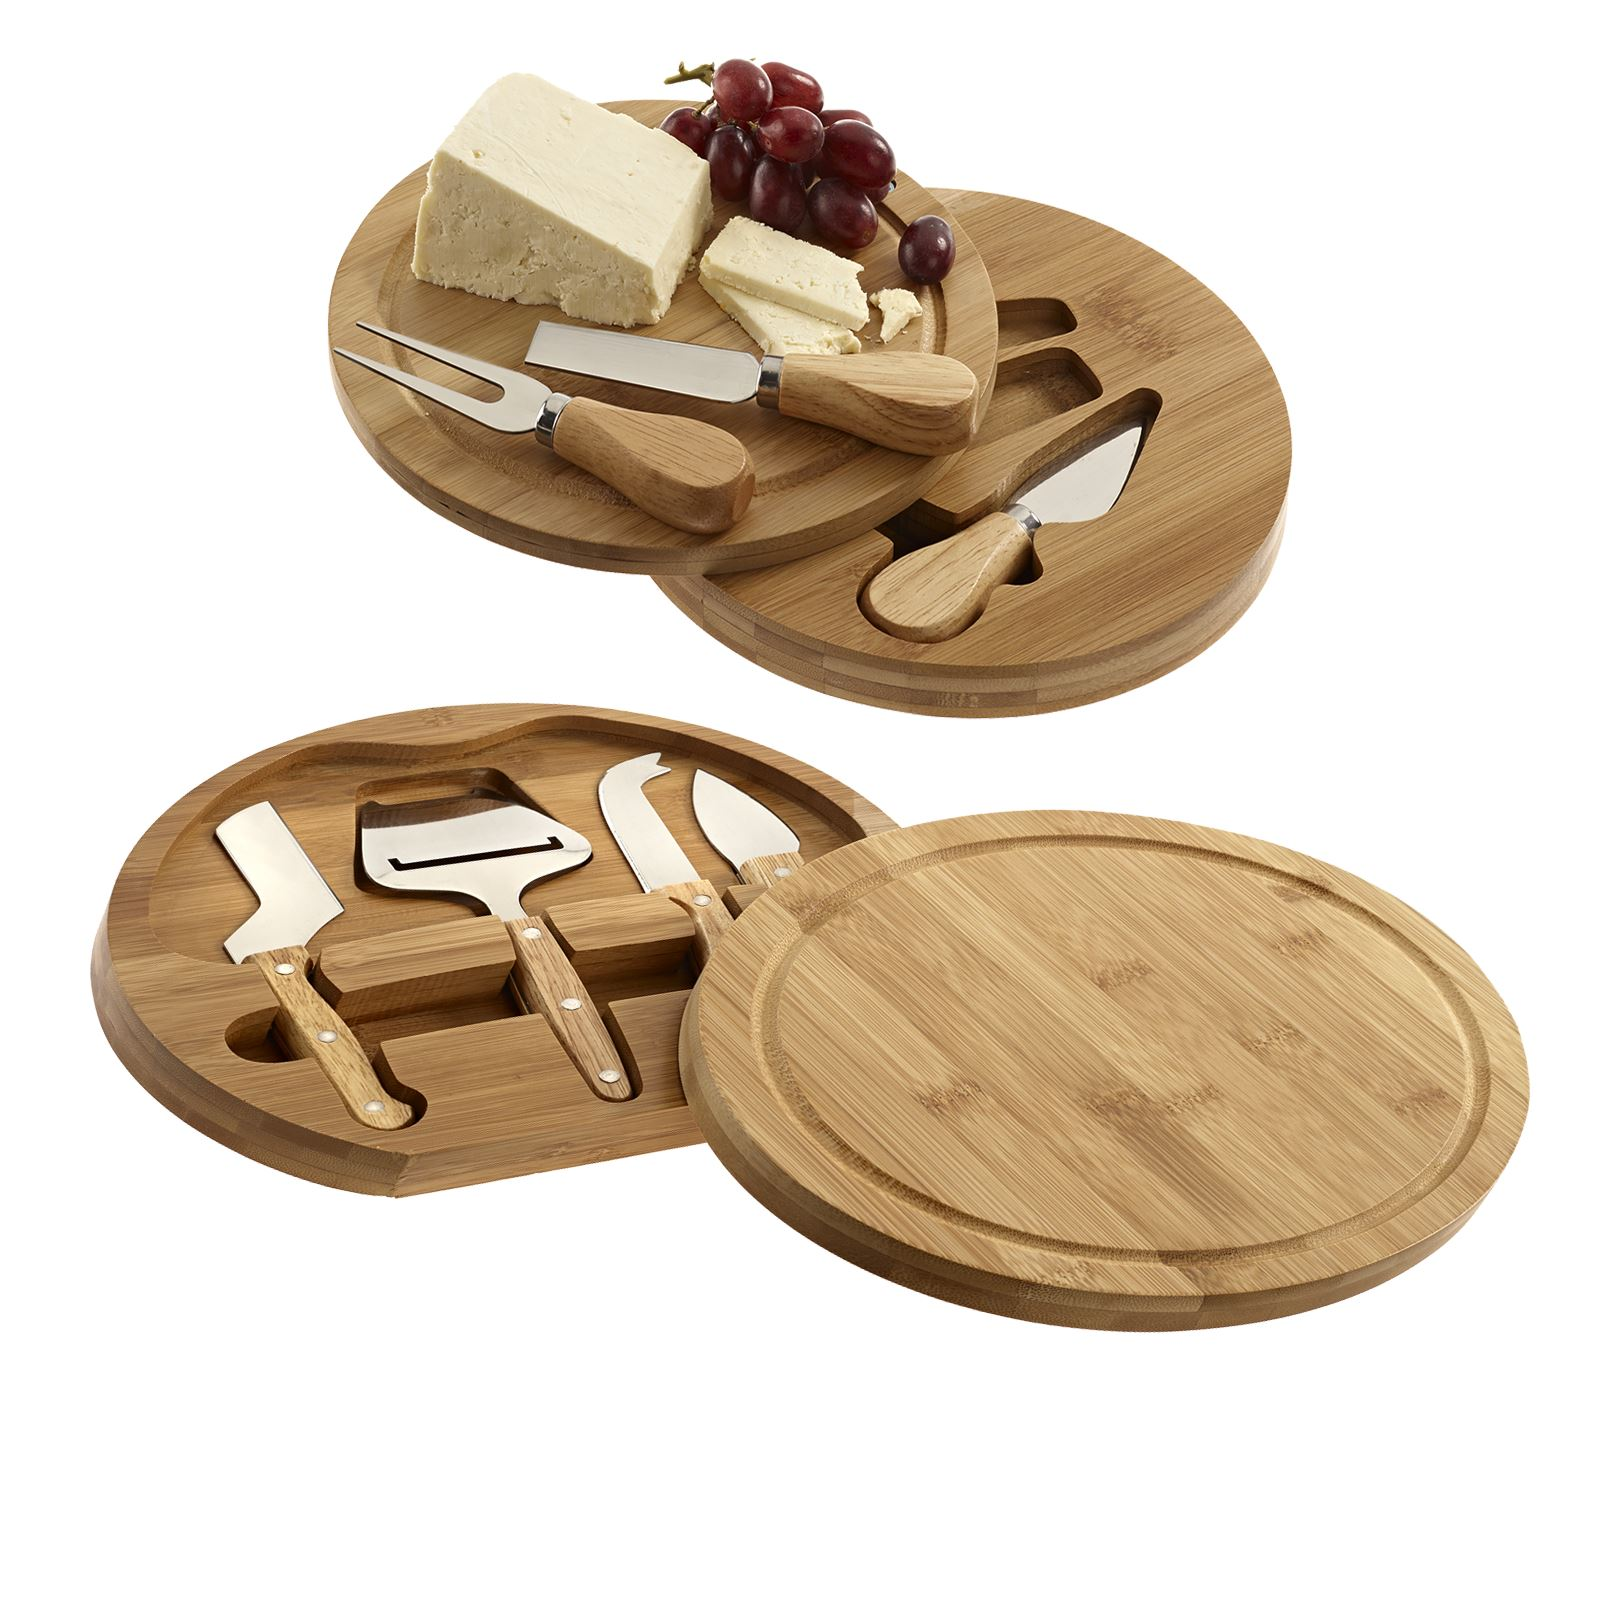 Bamboo Cheeseboards with Concealed Knife & Tool Set Chopping Board